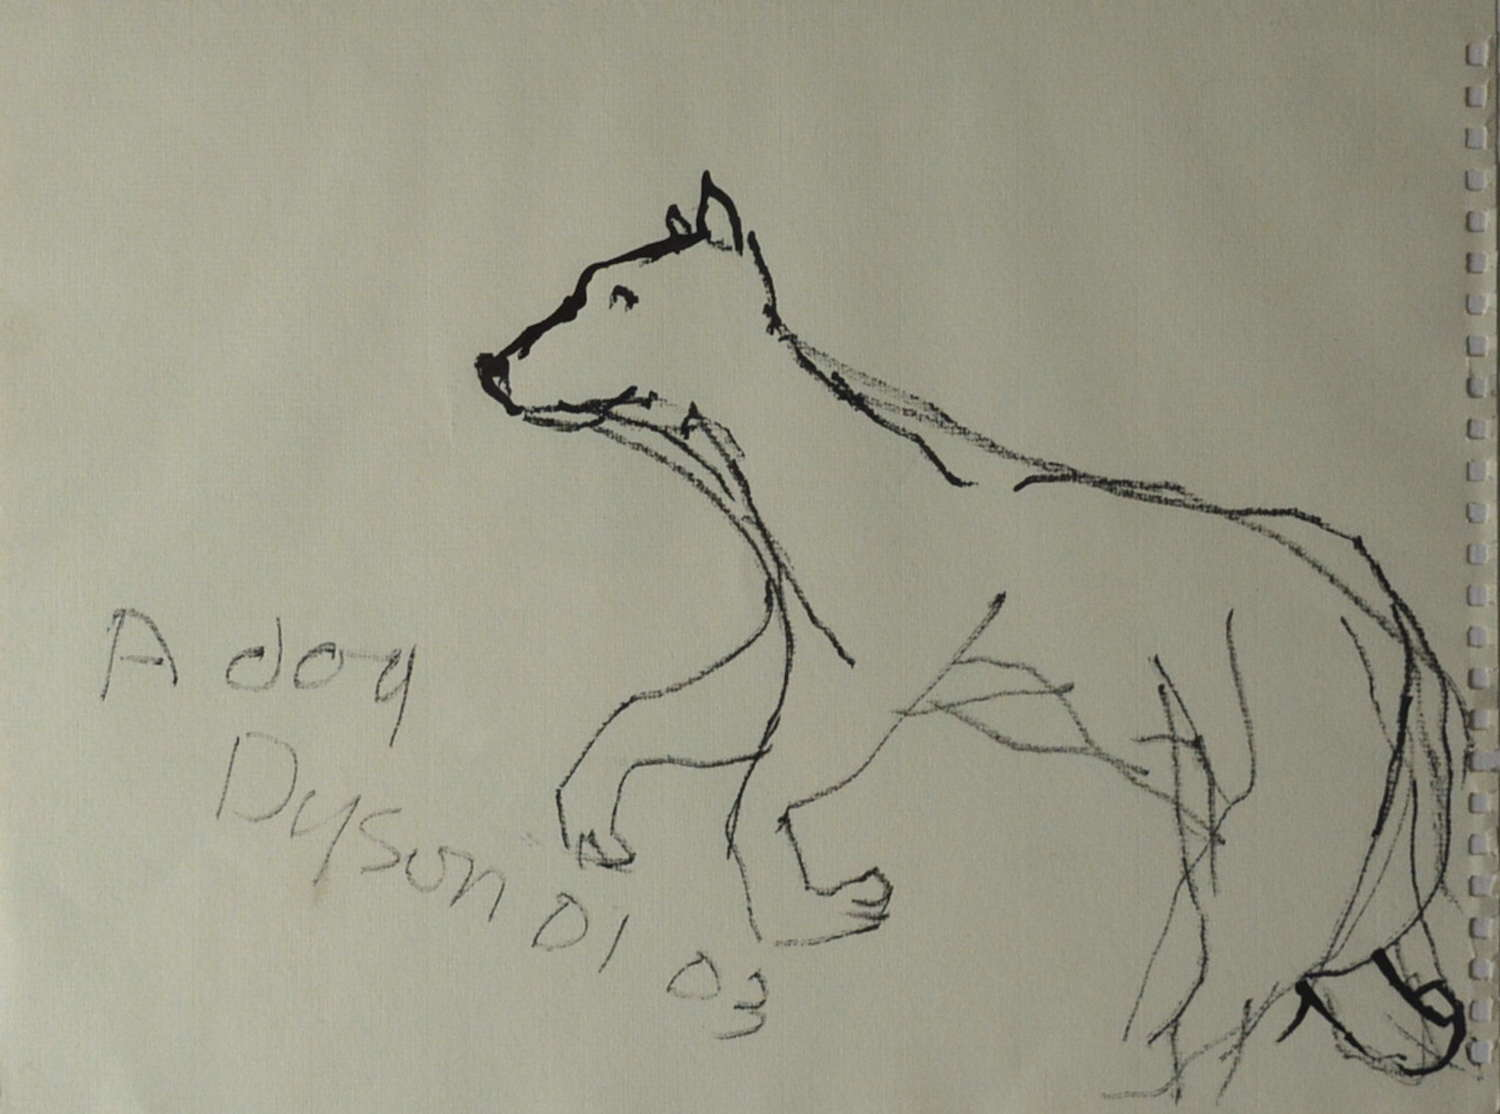 A DOG BY JULIAN DYSON